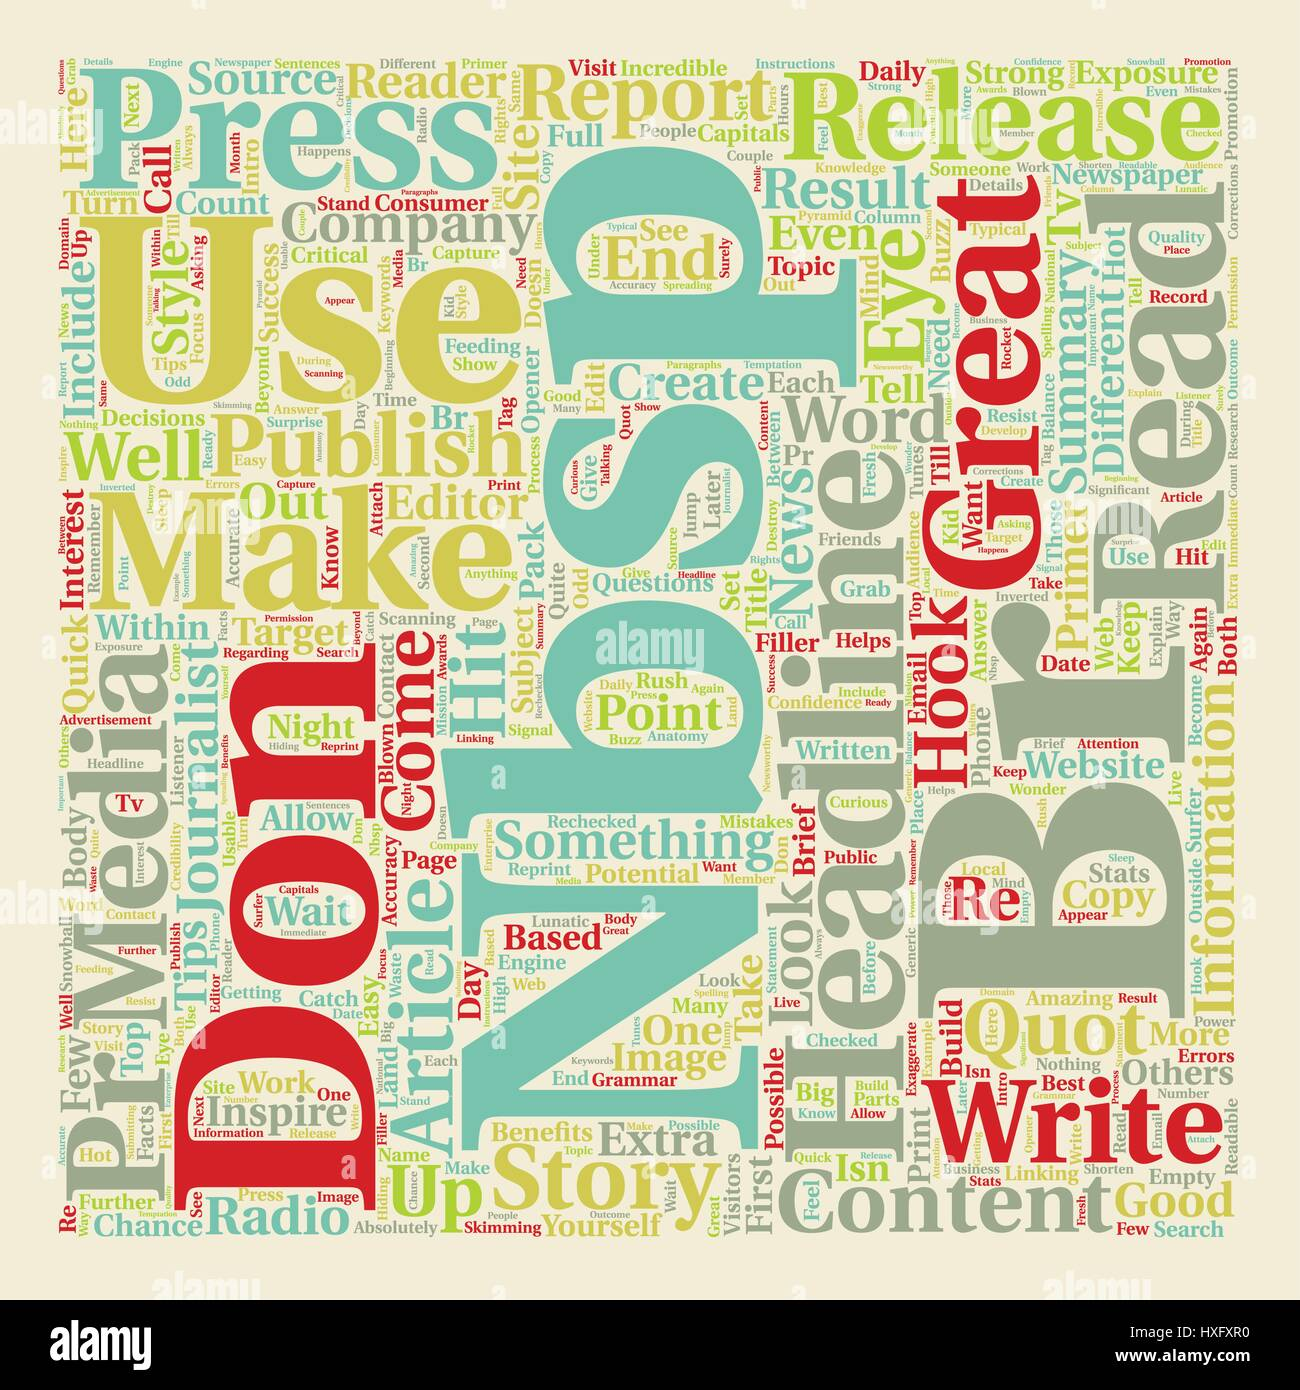 Press Releases Stock Vector Images - Alamy